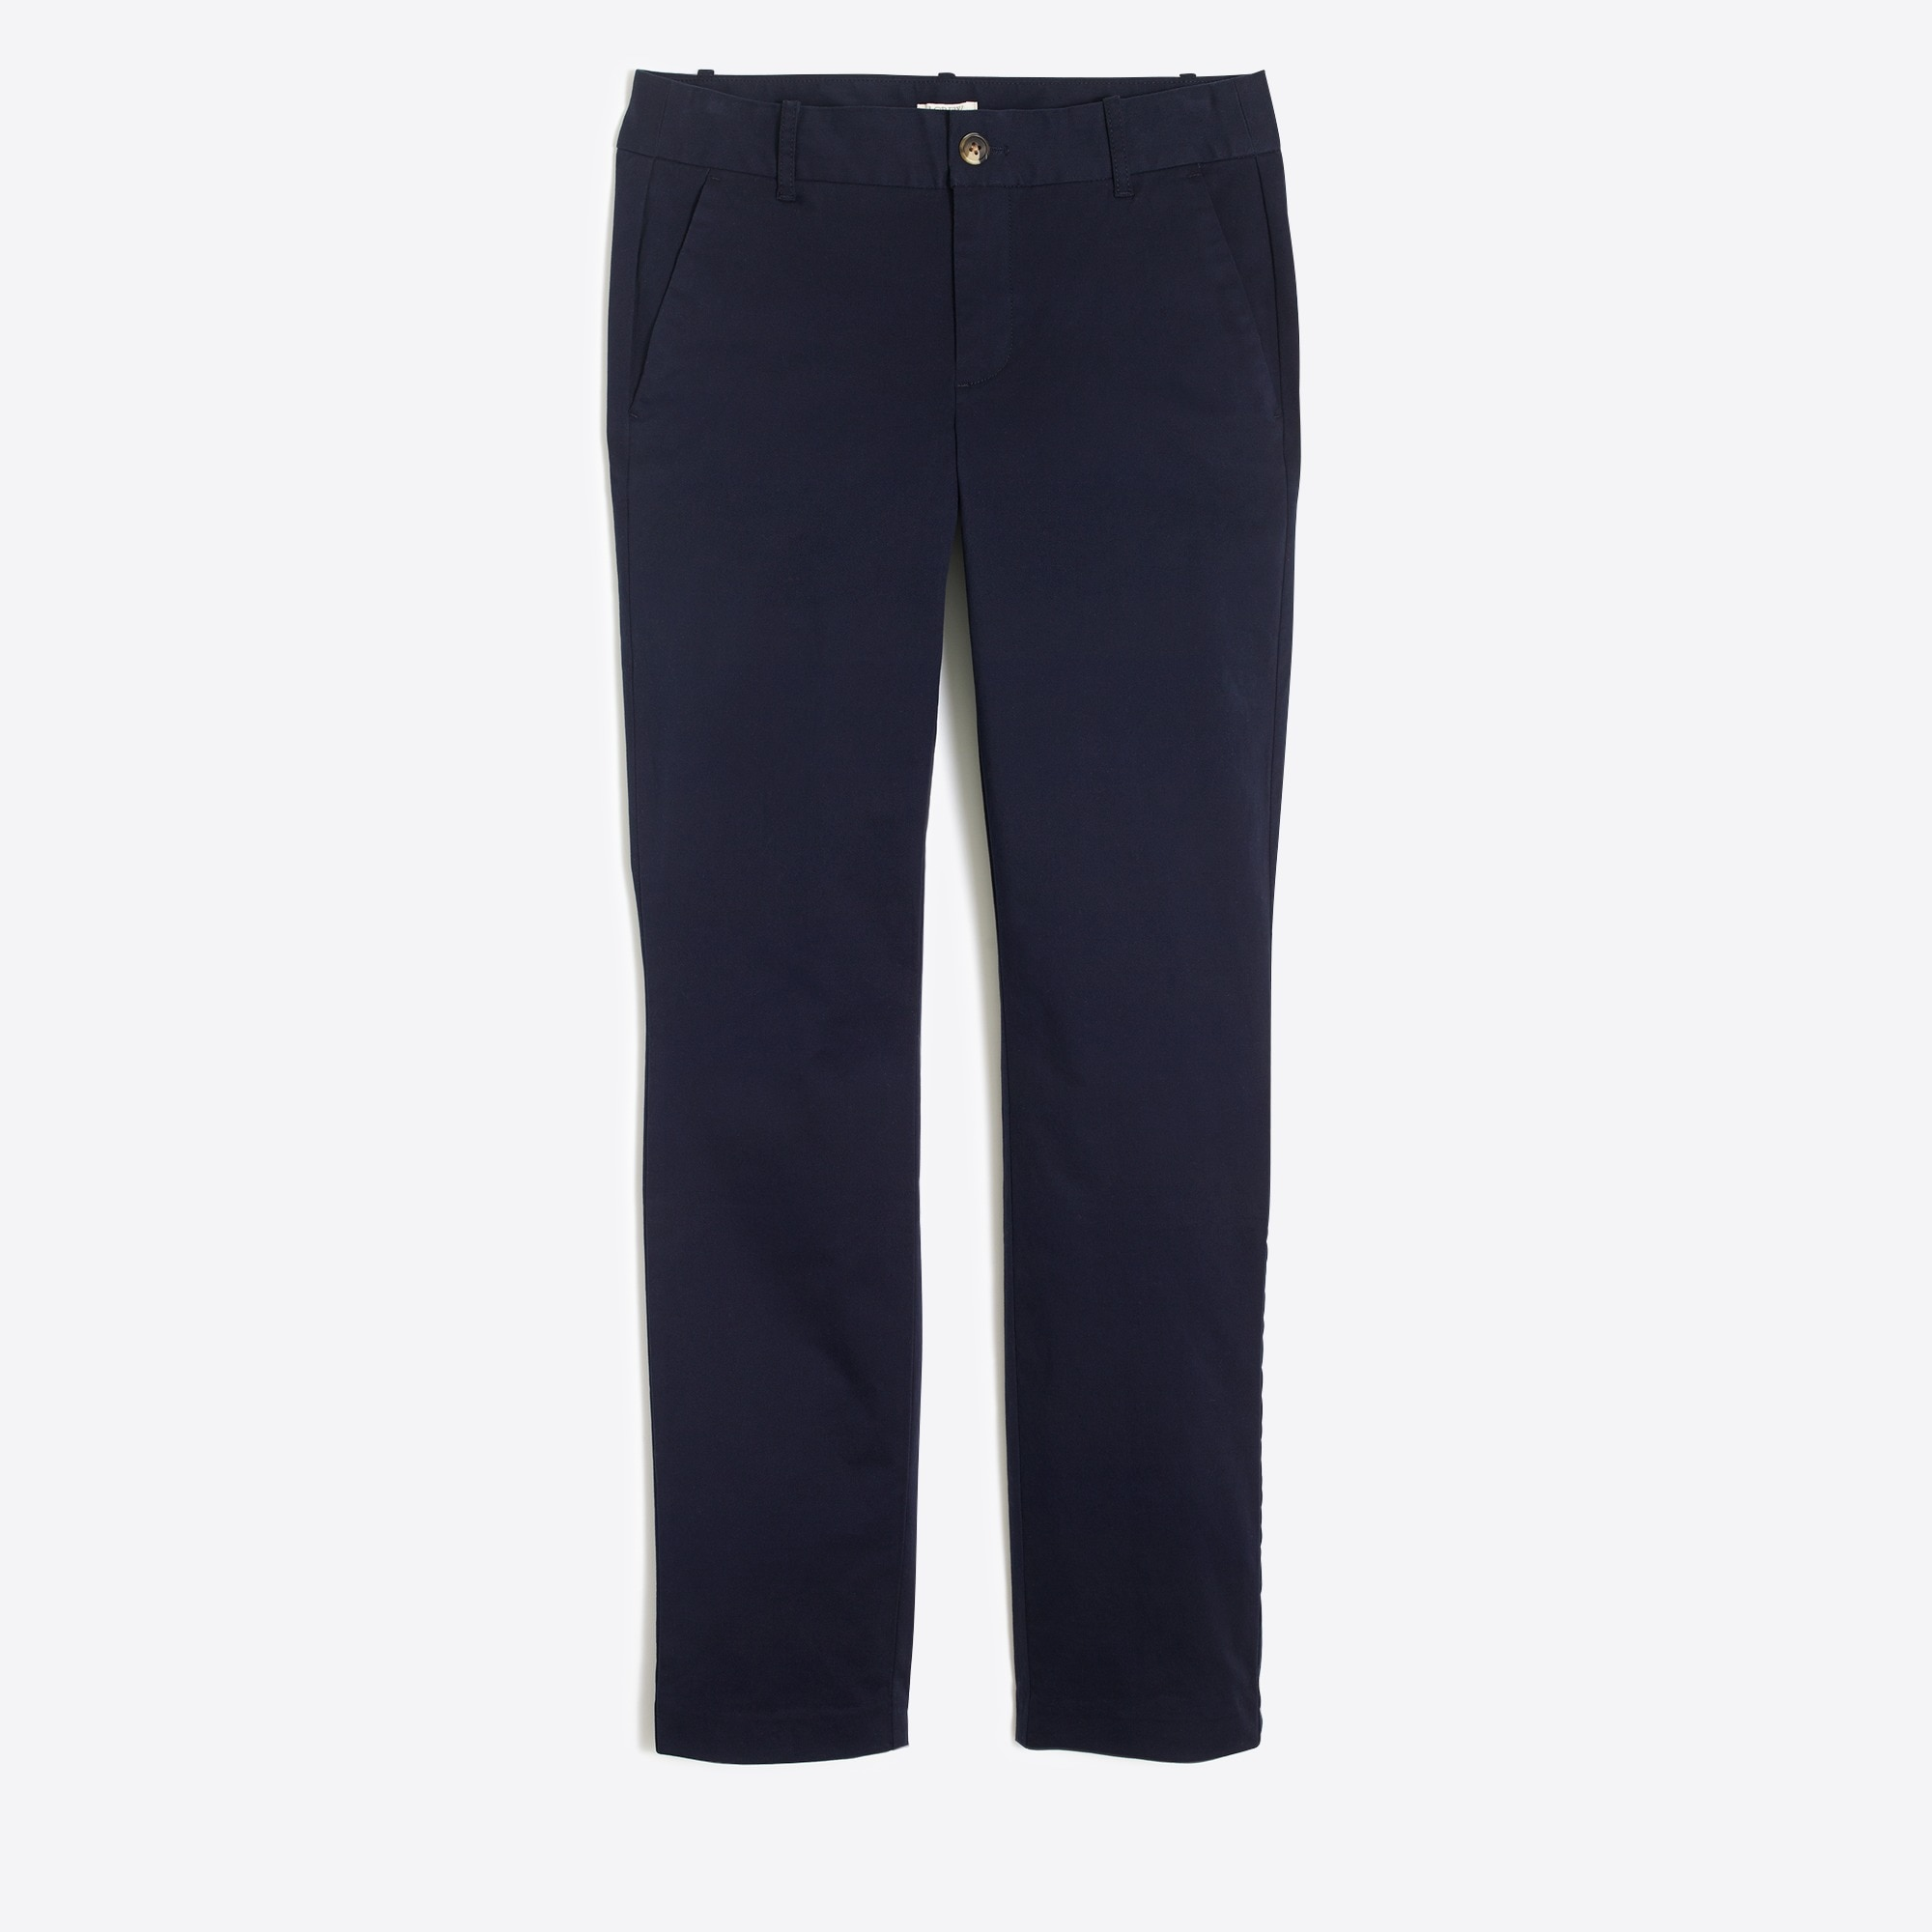 Image 2 for Petite laney chino pant